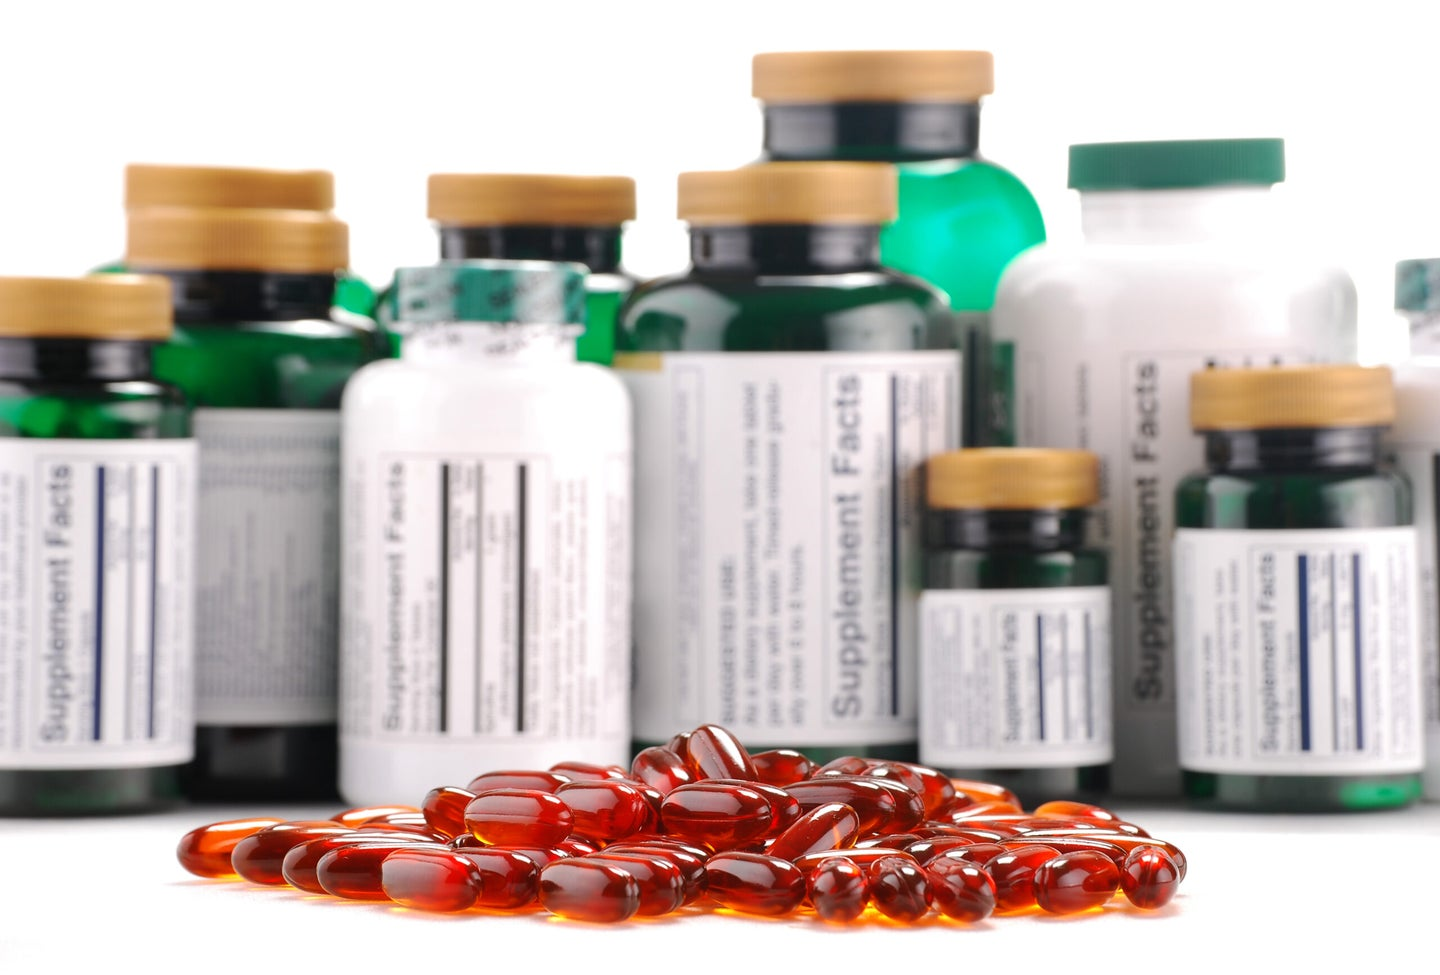 Common dietary supplements linked to miscarriages in rodents